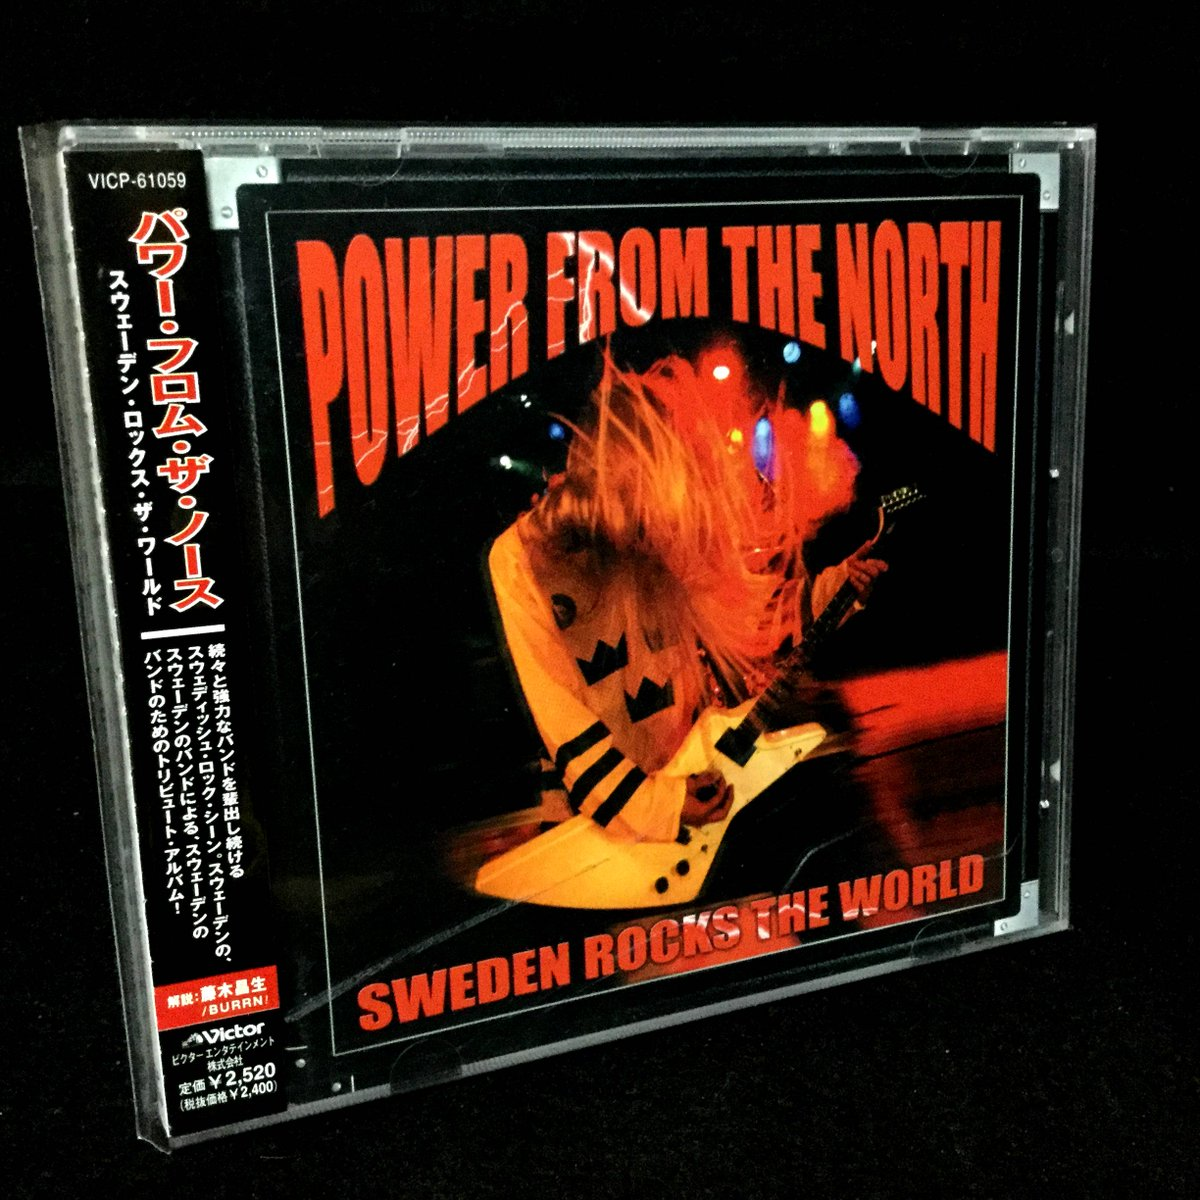 "20th ANNIVERSARY!!!!!!!!!!!!!!!!!!!!!!! ""Power From The North: Sweden Rocks The World"" [May 24th, 2000] #InFlames #LostSouls #LocomotiveBreath #Entombed #LionsShare #TransportLeague #Glory  #TheCrown #HammerFall #Gooseflesh #TreasureLand #TheHaunted #TheQuill #Southpaw #Meshuggah https://t.co/LScXFYGMGq"